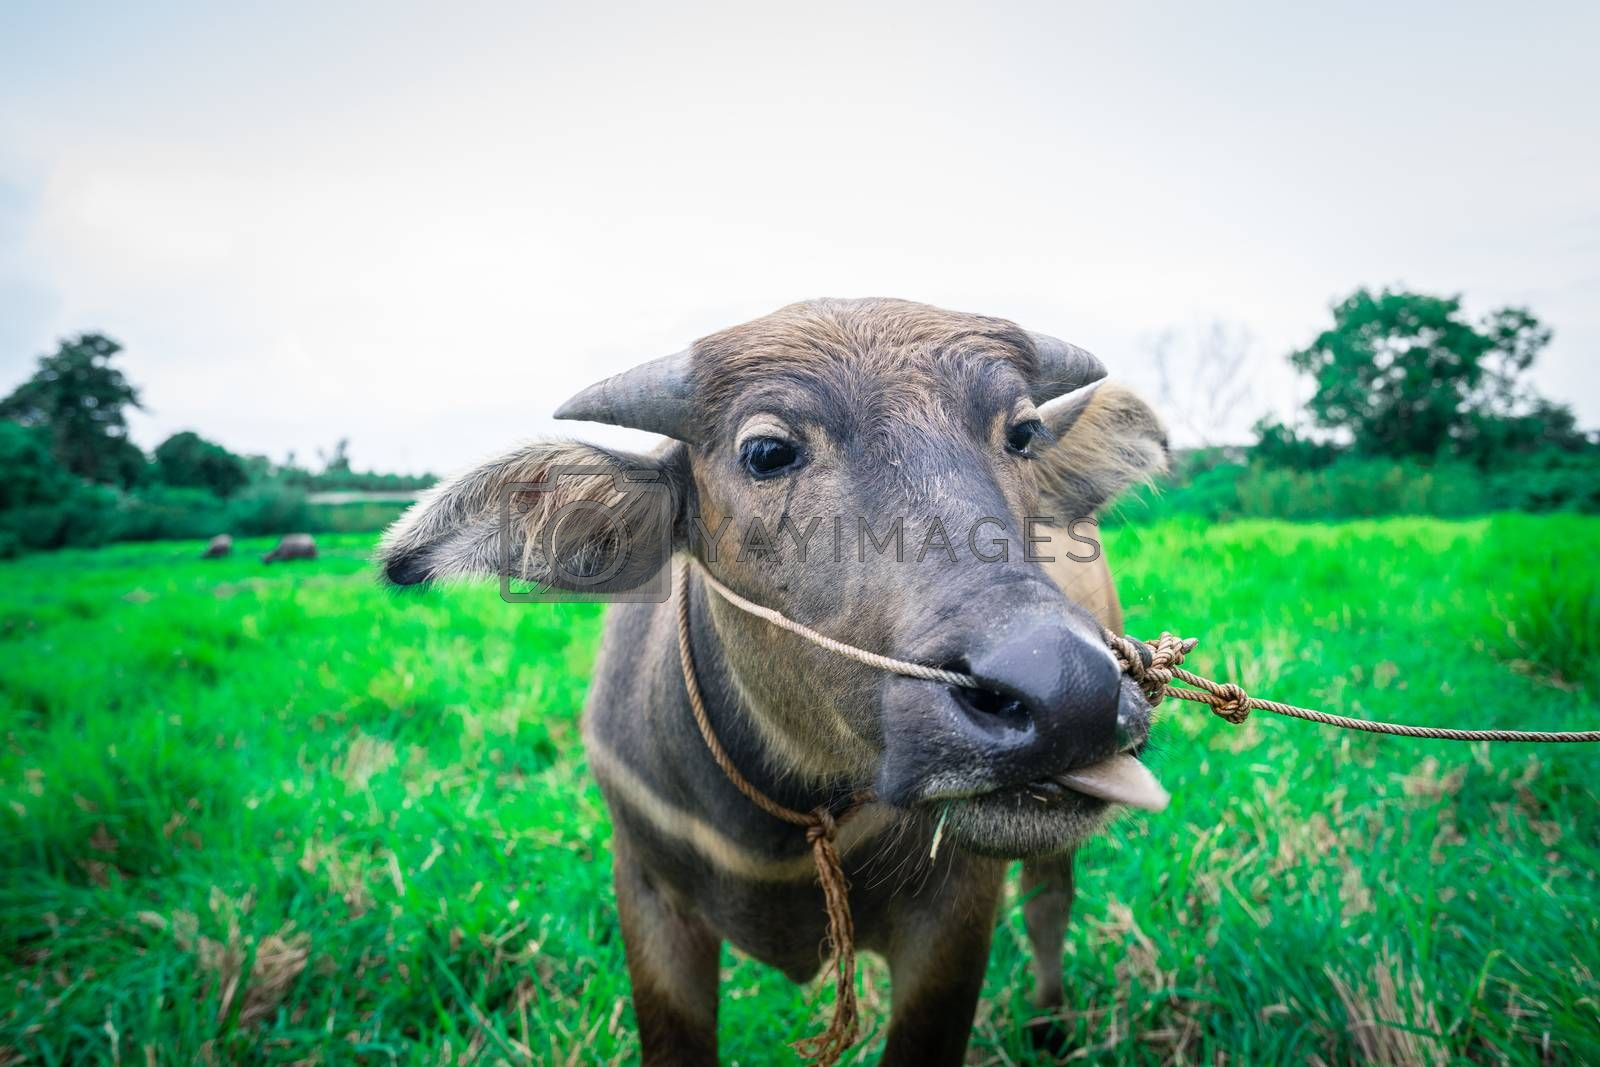 Thai buffalo stick out tongue in green grass field, animal head